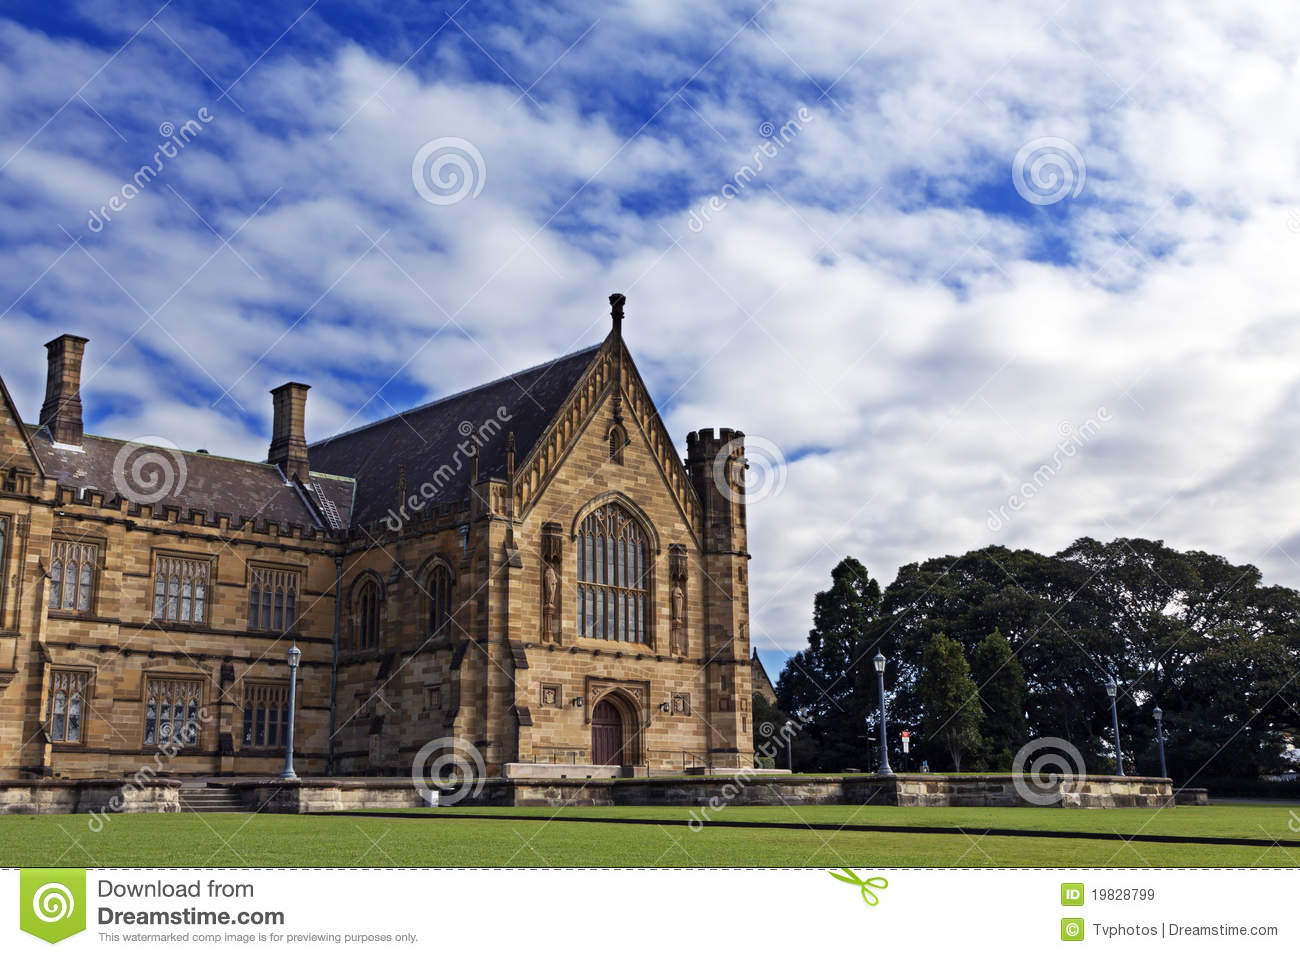 Engineering Management university of sydney art